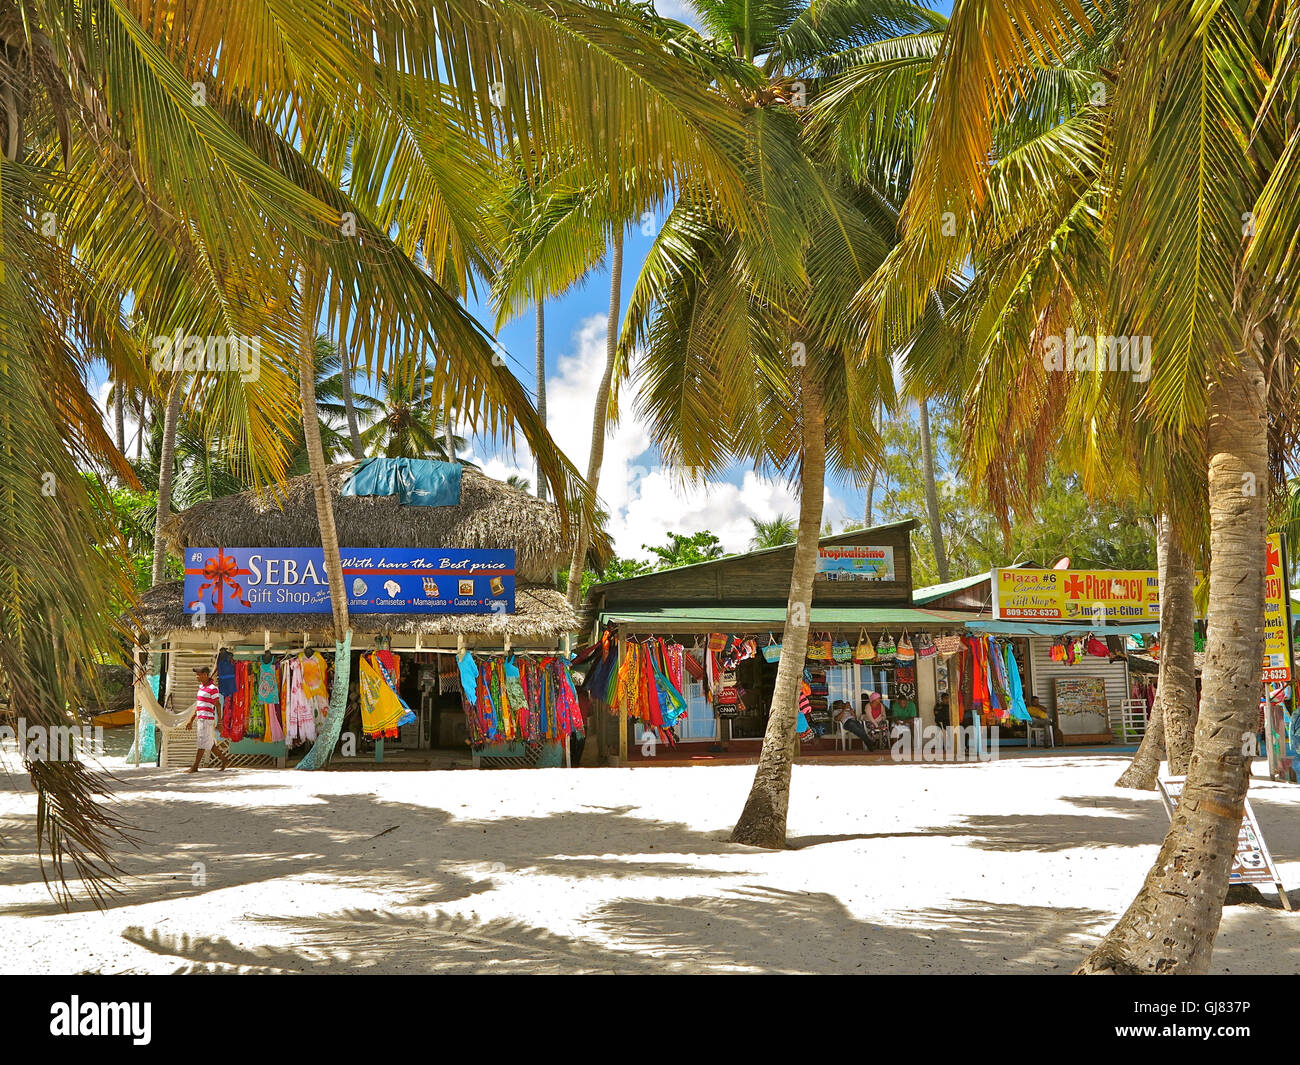 The Dominican Republic The Caribbean Playa Bavaro Punta Cana Stock Photo Alamy